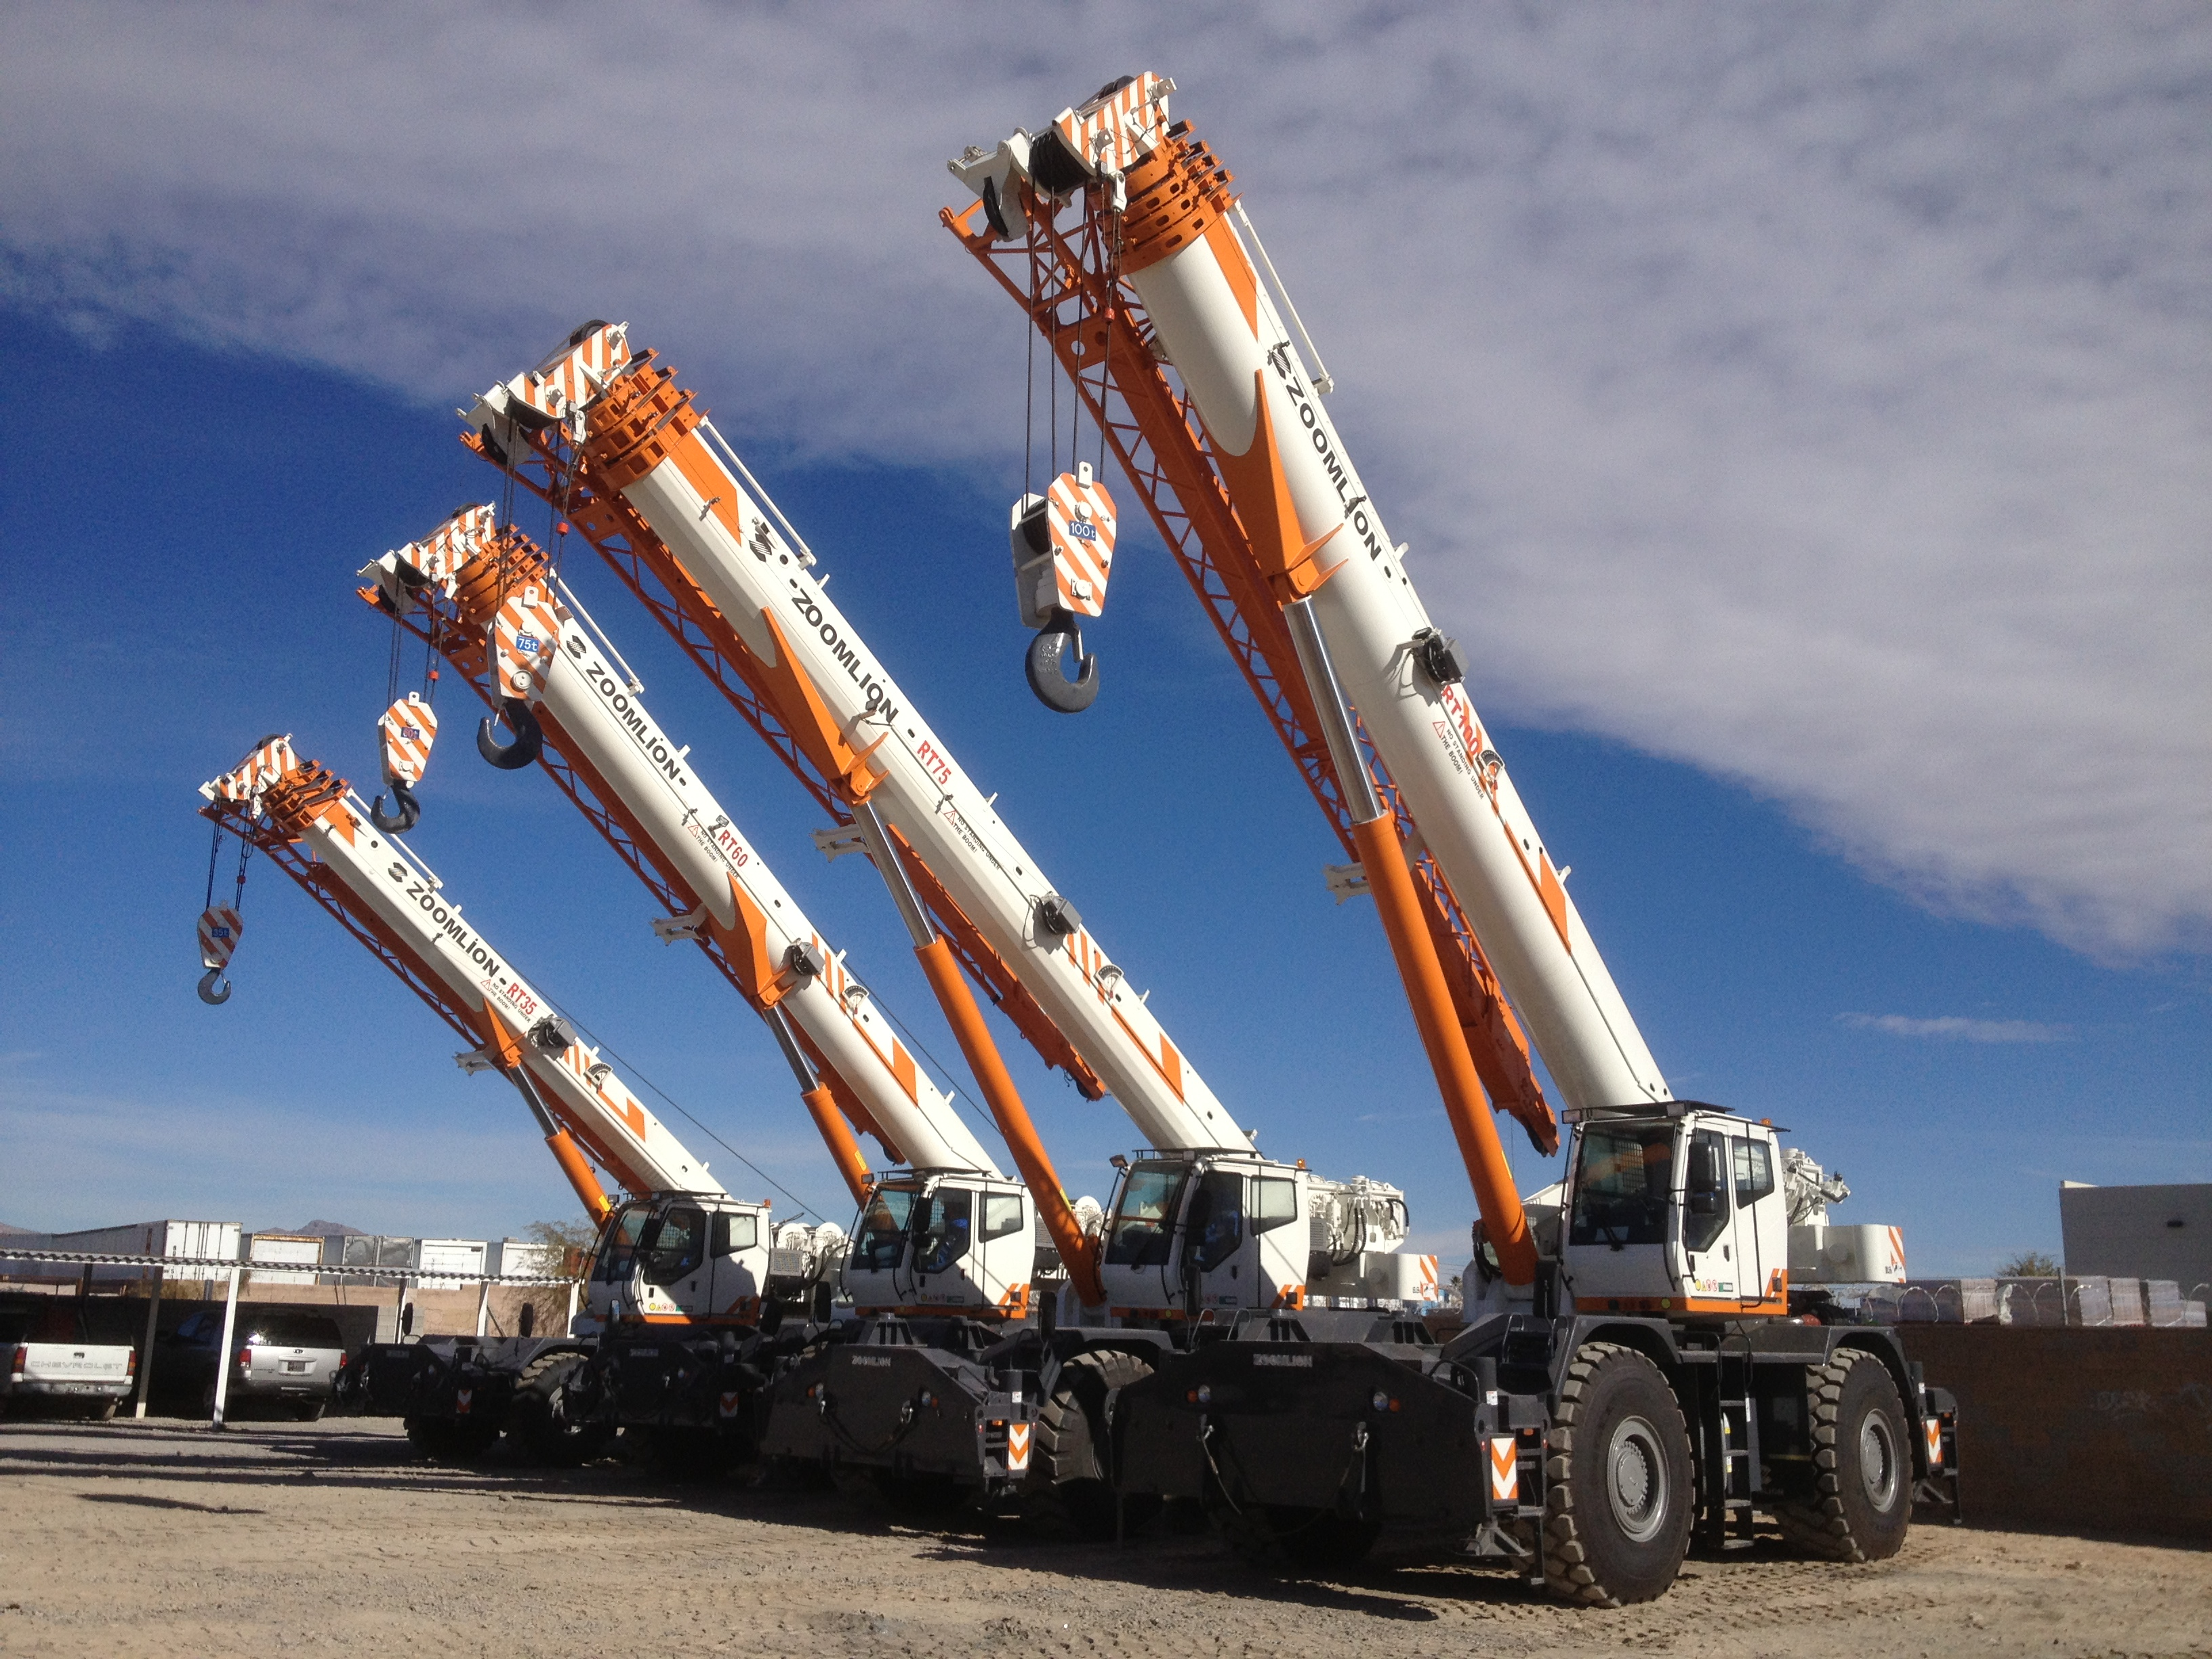 Grues mobiles « Tout terrain » 4x4 GLOBAL CRANE/ZOOMLION